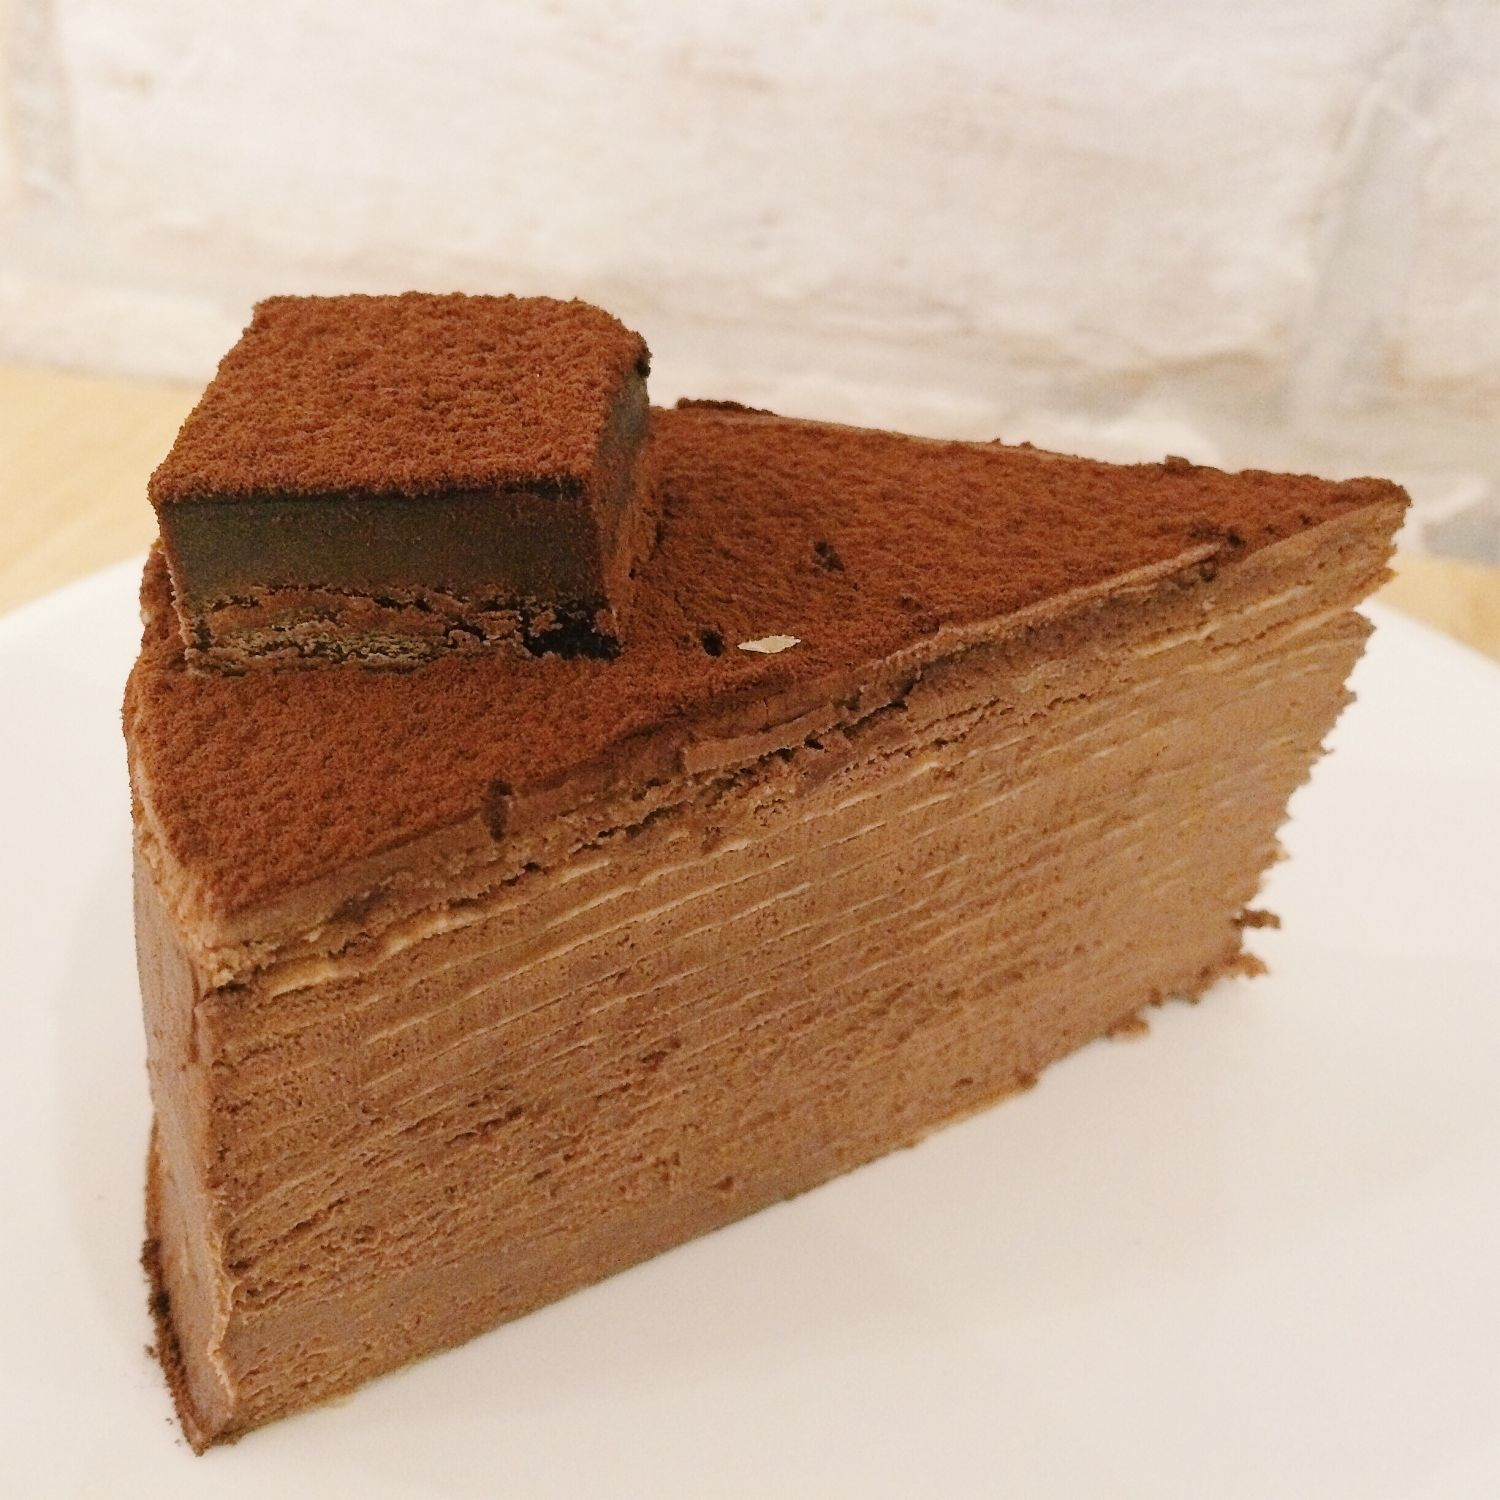 Brandied Chocolate Mille Crepe Cake - The Udder Pancake